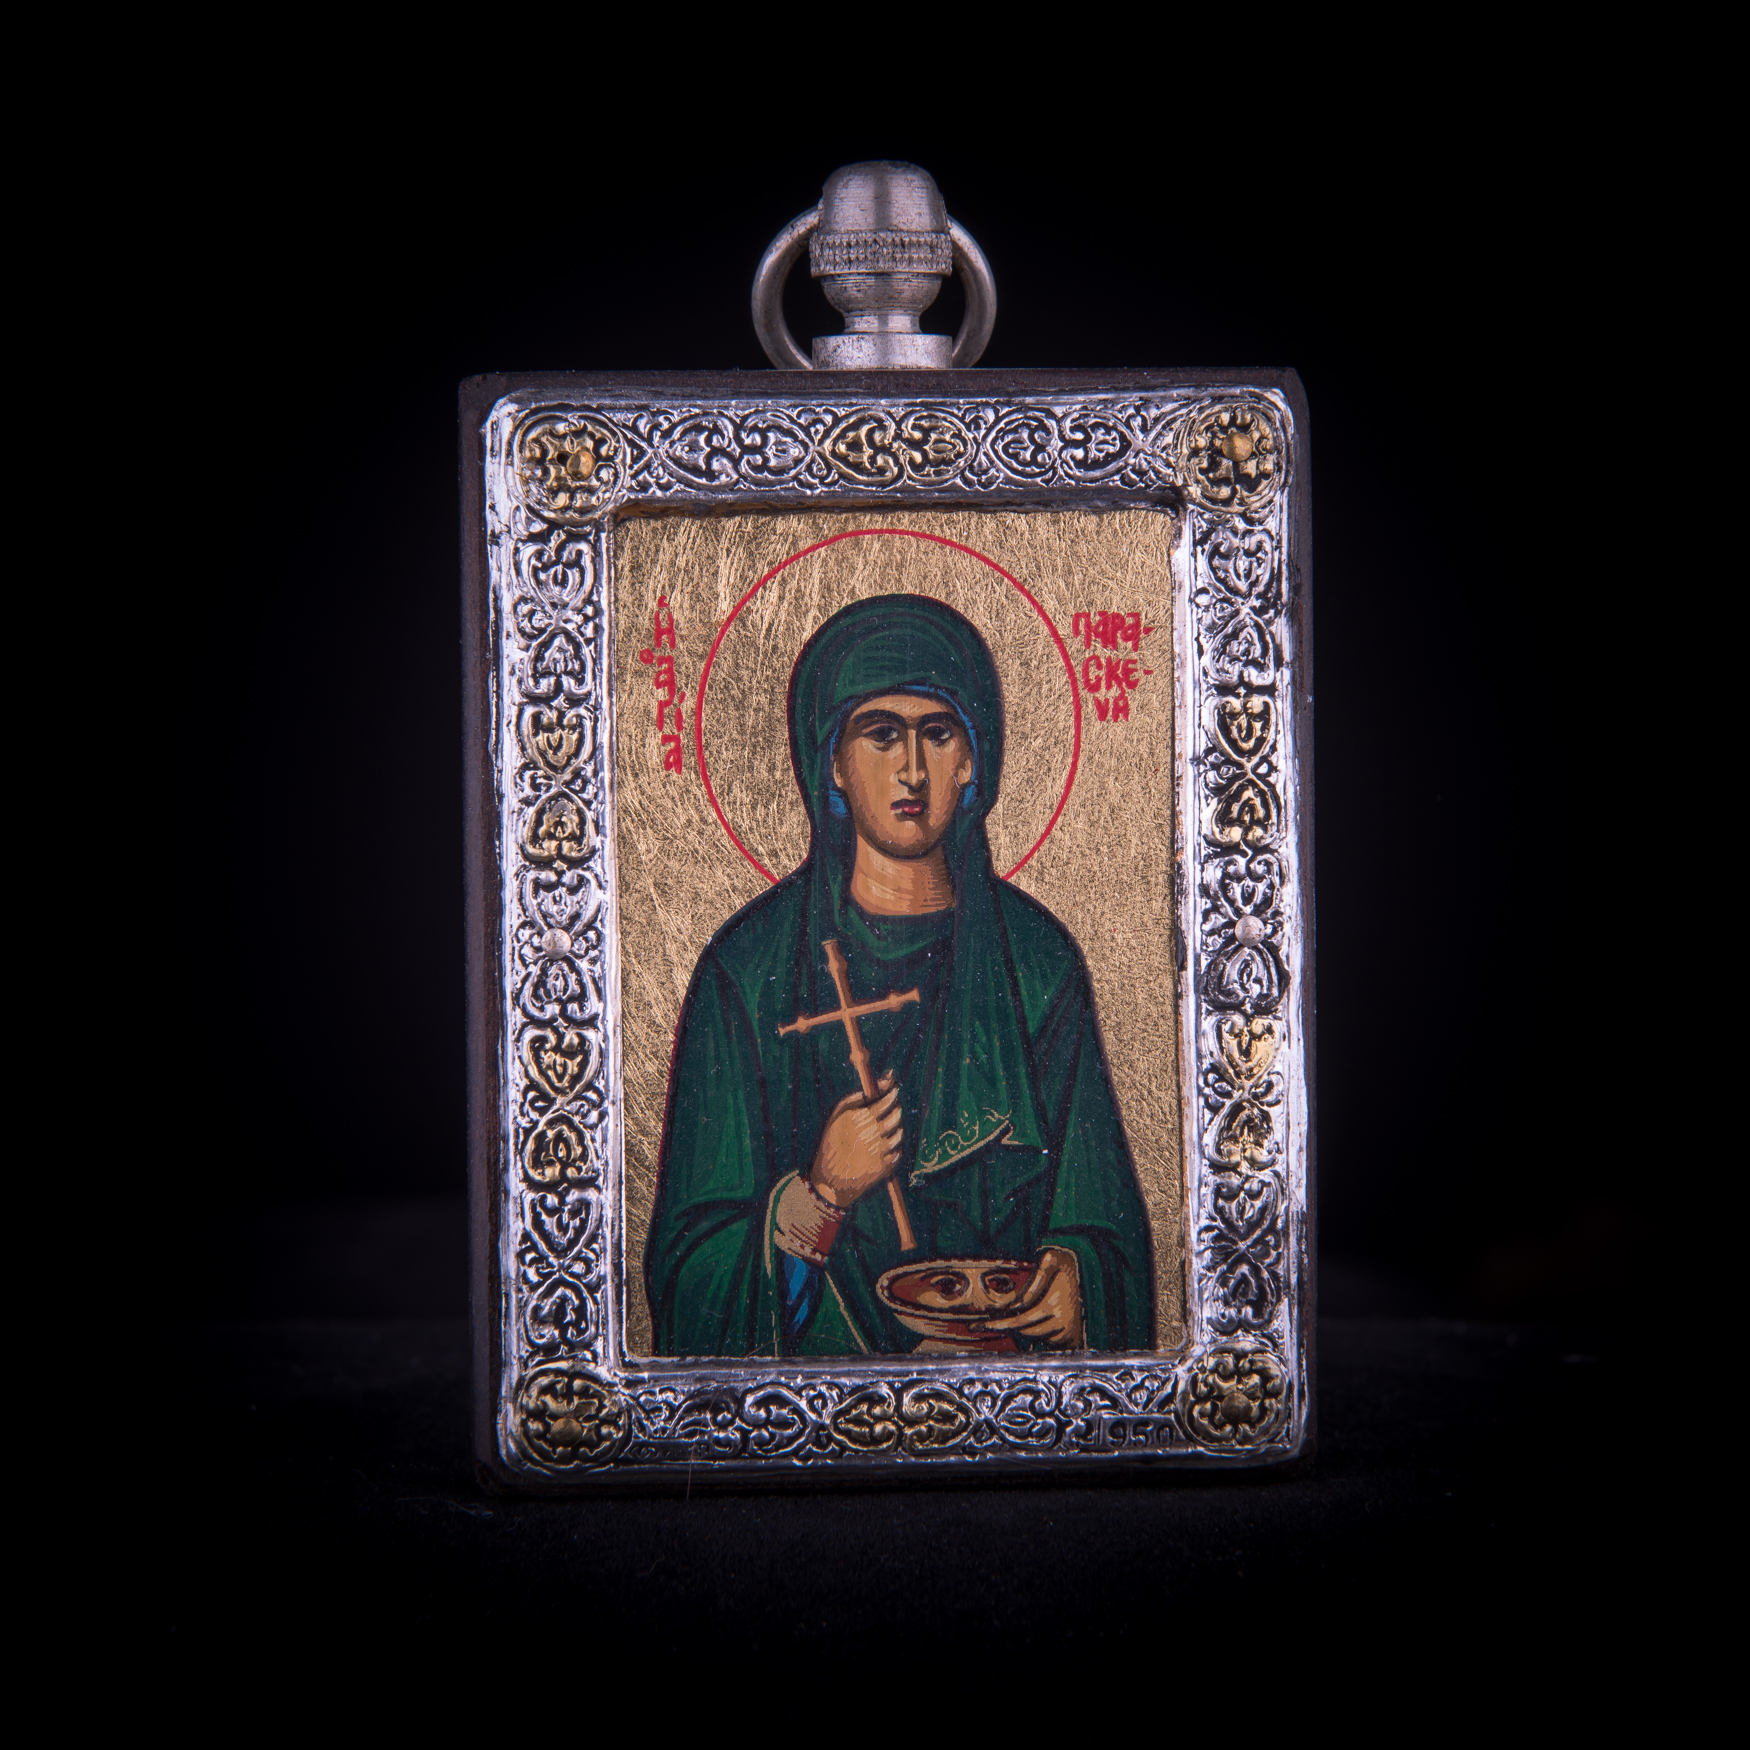 002/0047   Silver icon of Saint Paraskeva